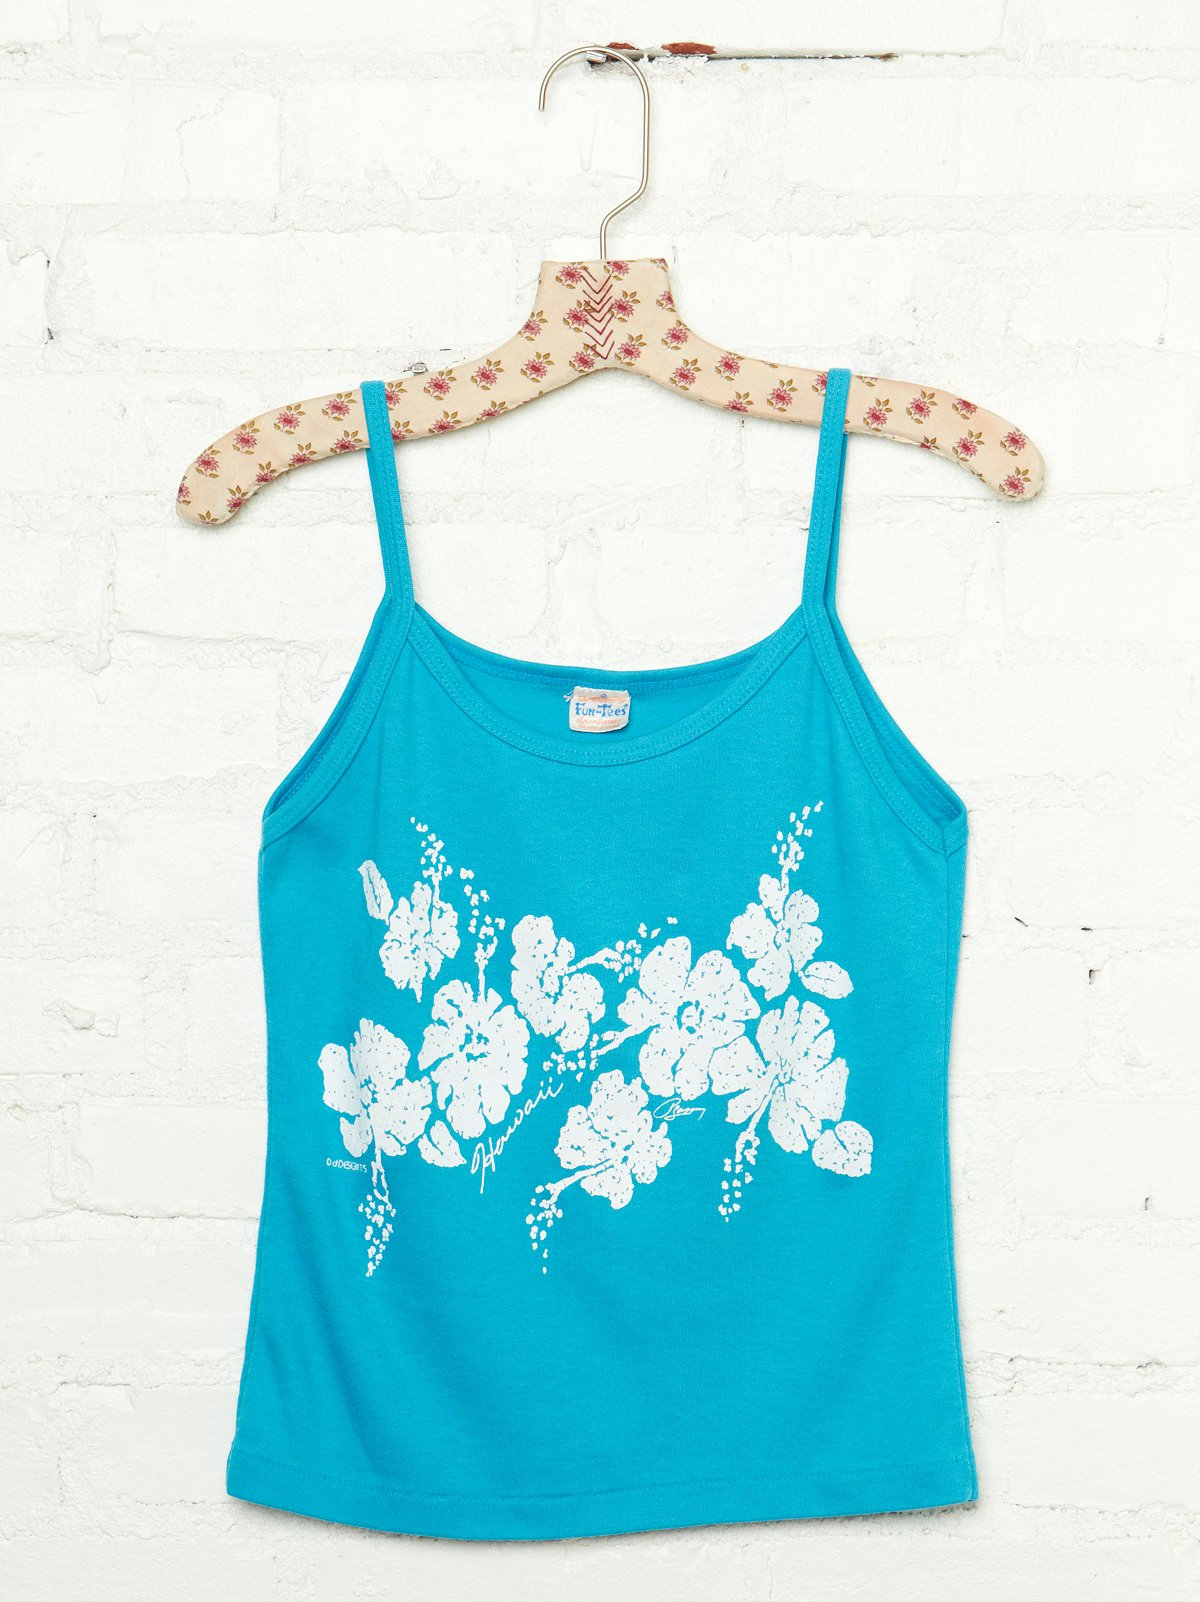 Vintage Hibiscus Floral Graphic Tank